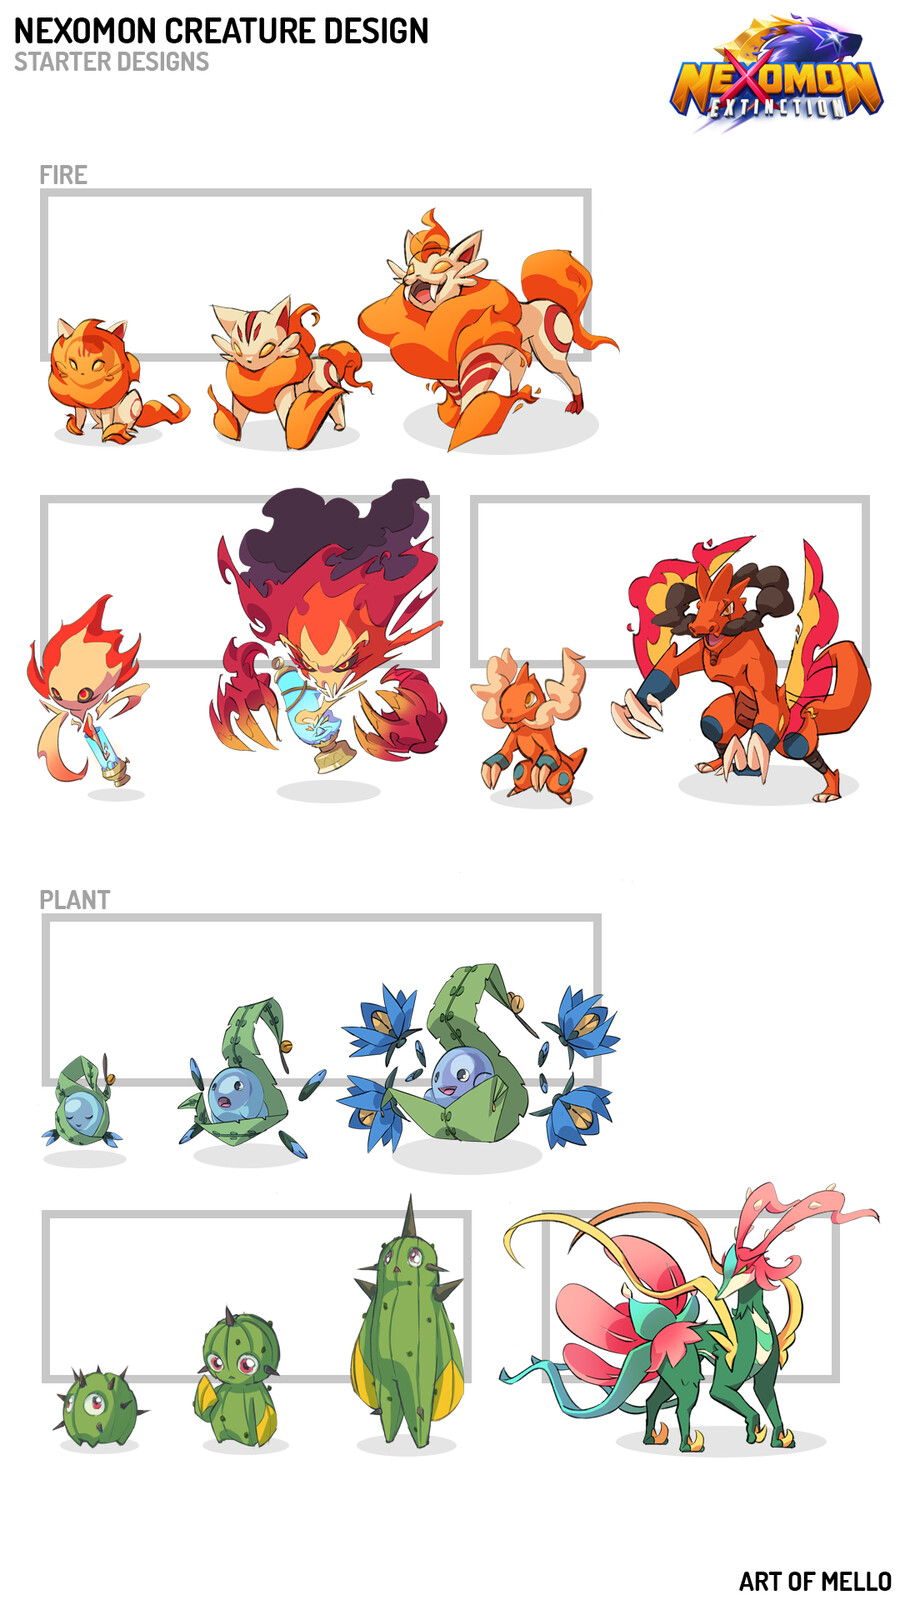 Nexomon Creature Designs